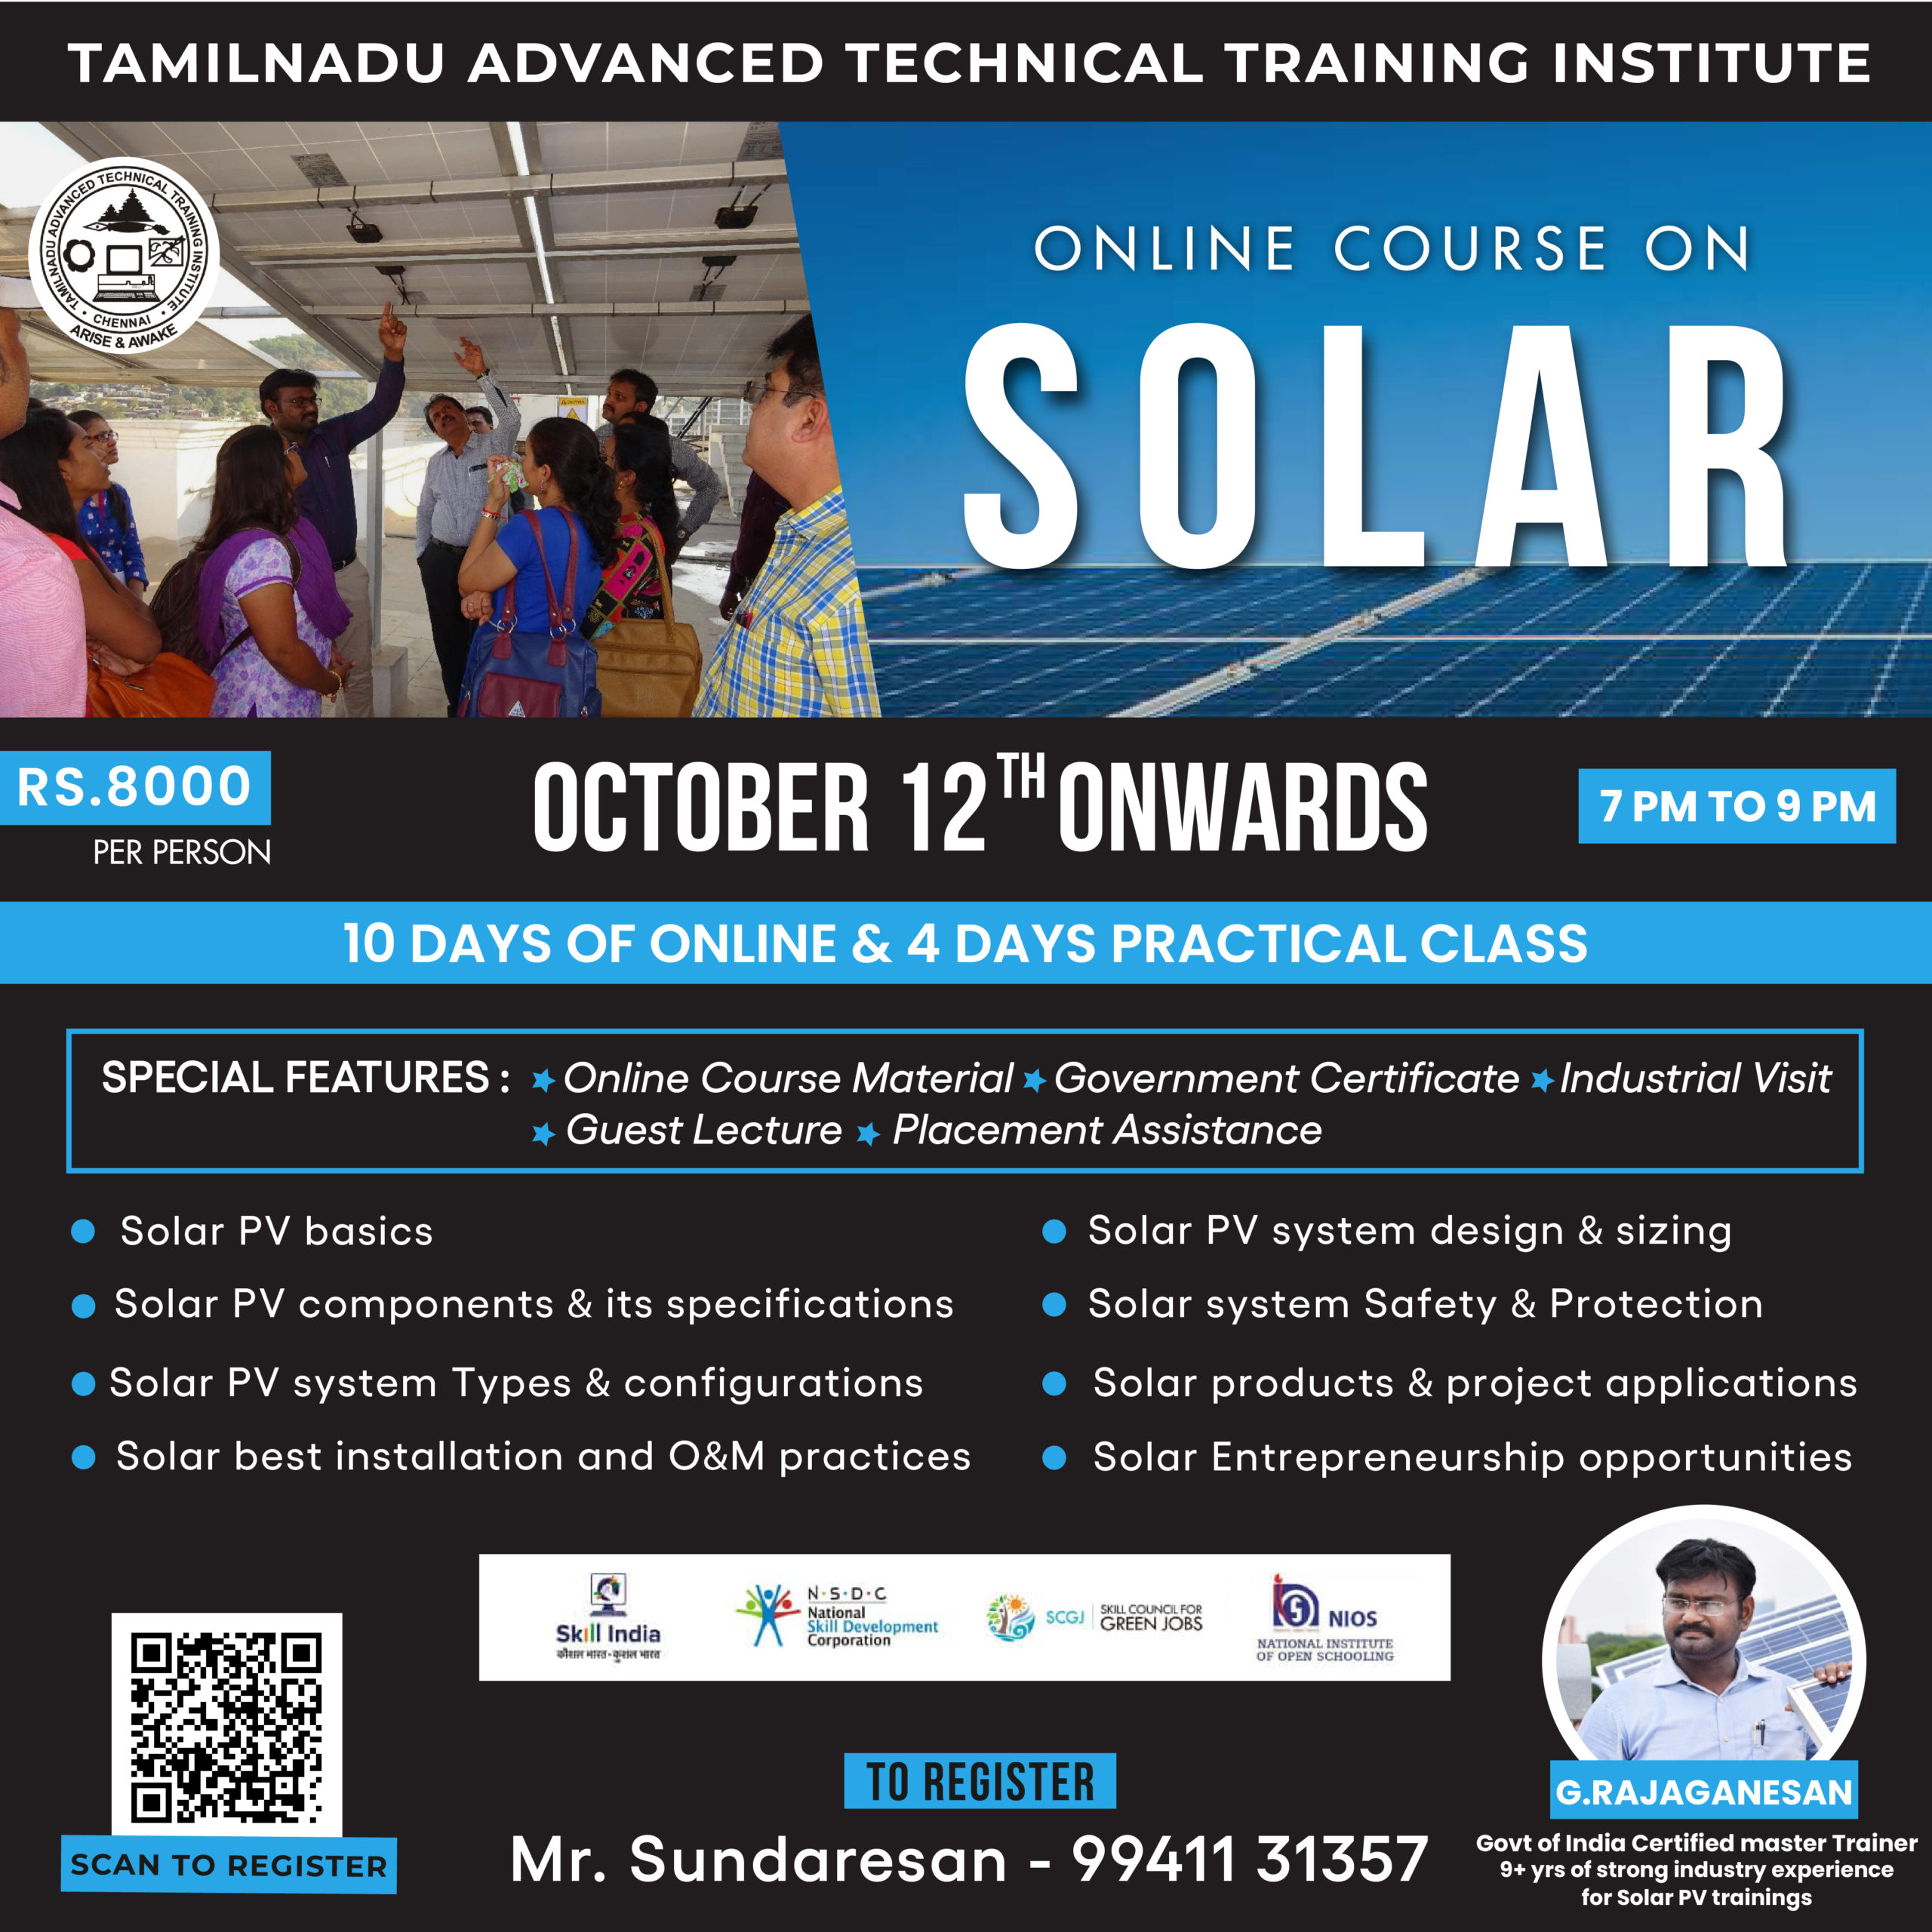 Online course on Solar 2-01